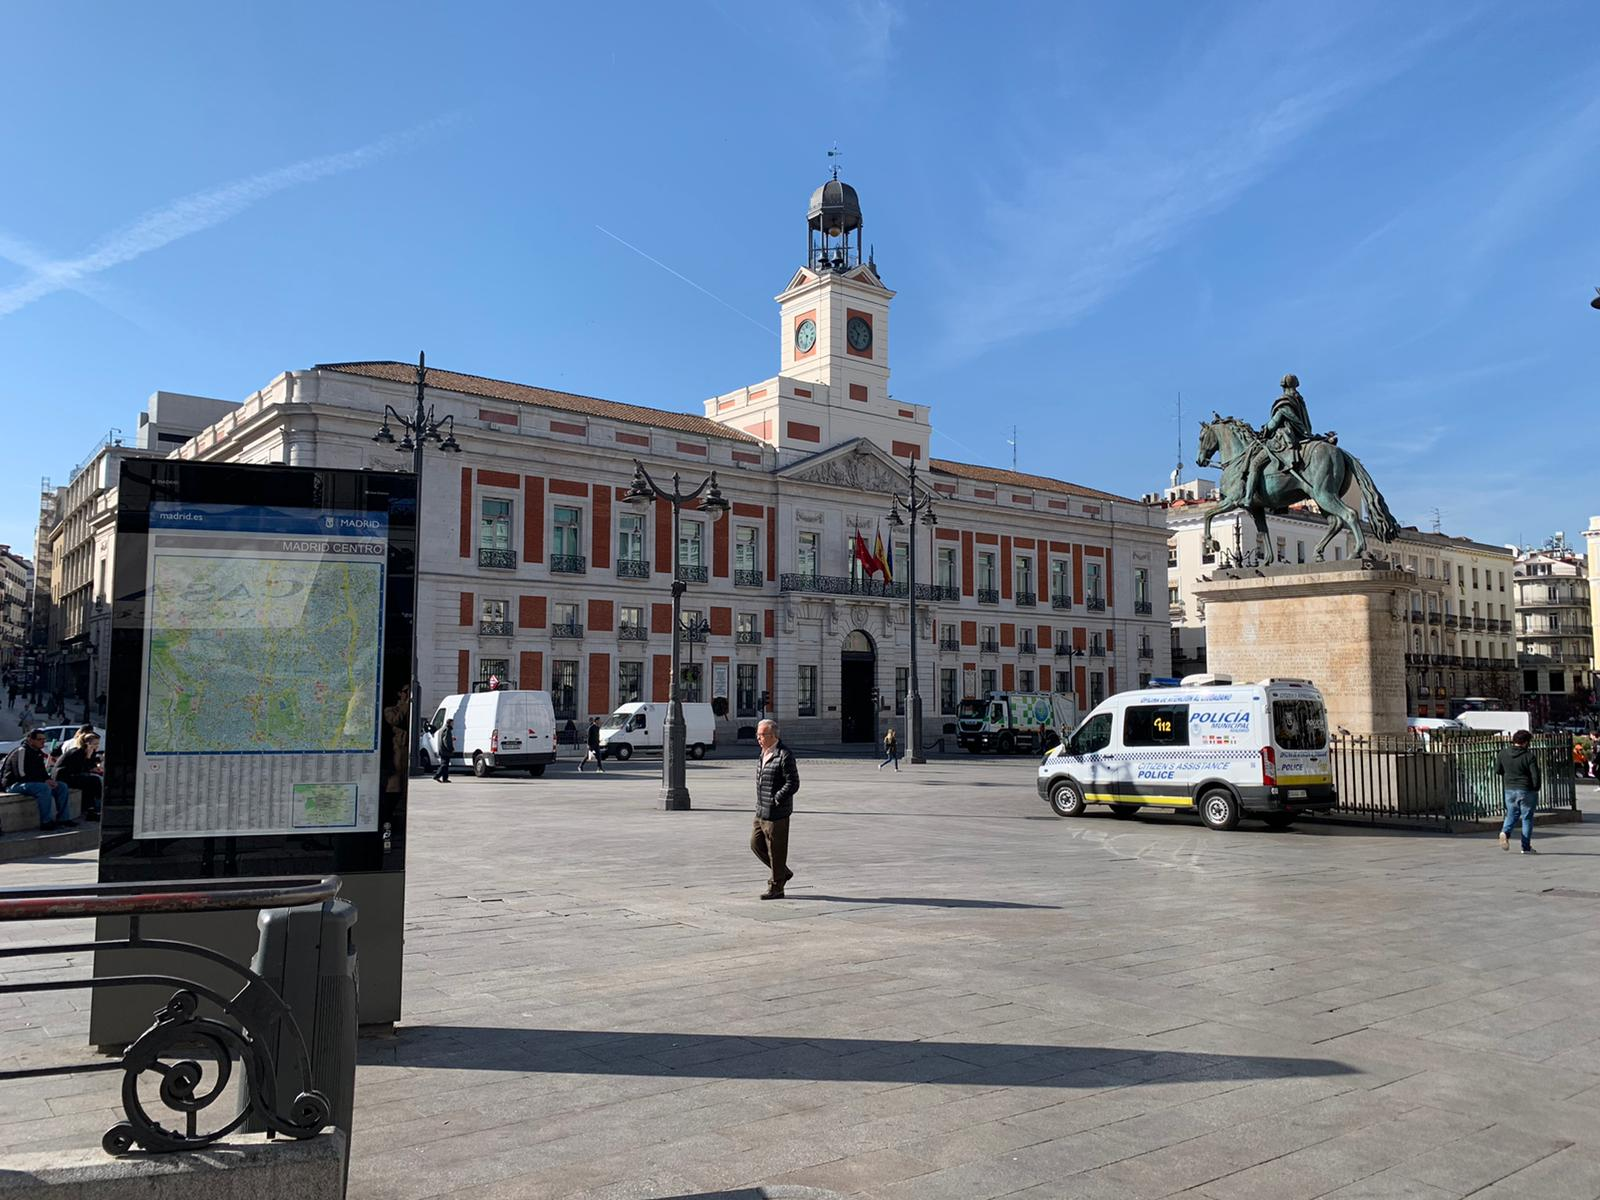 Puerta del Sol in Central Madrid, normally extremely busy, was quiet on day three of quarantine measures.